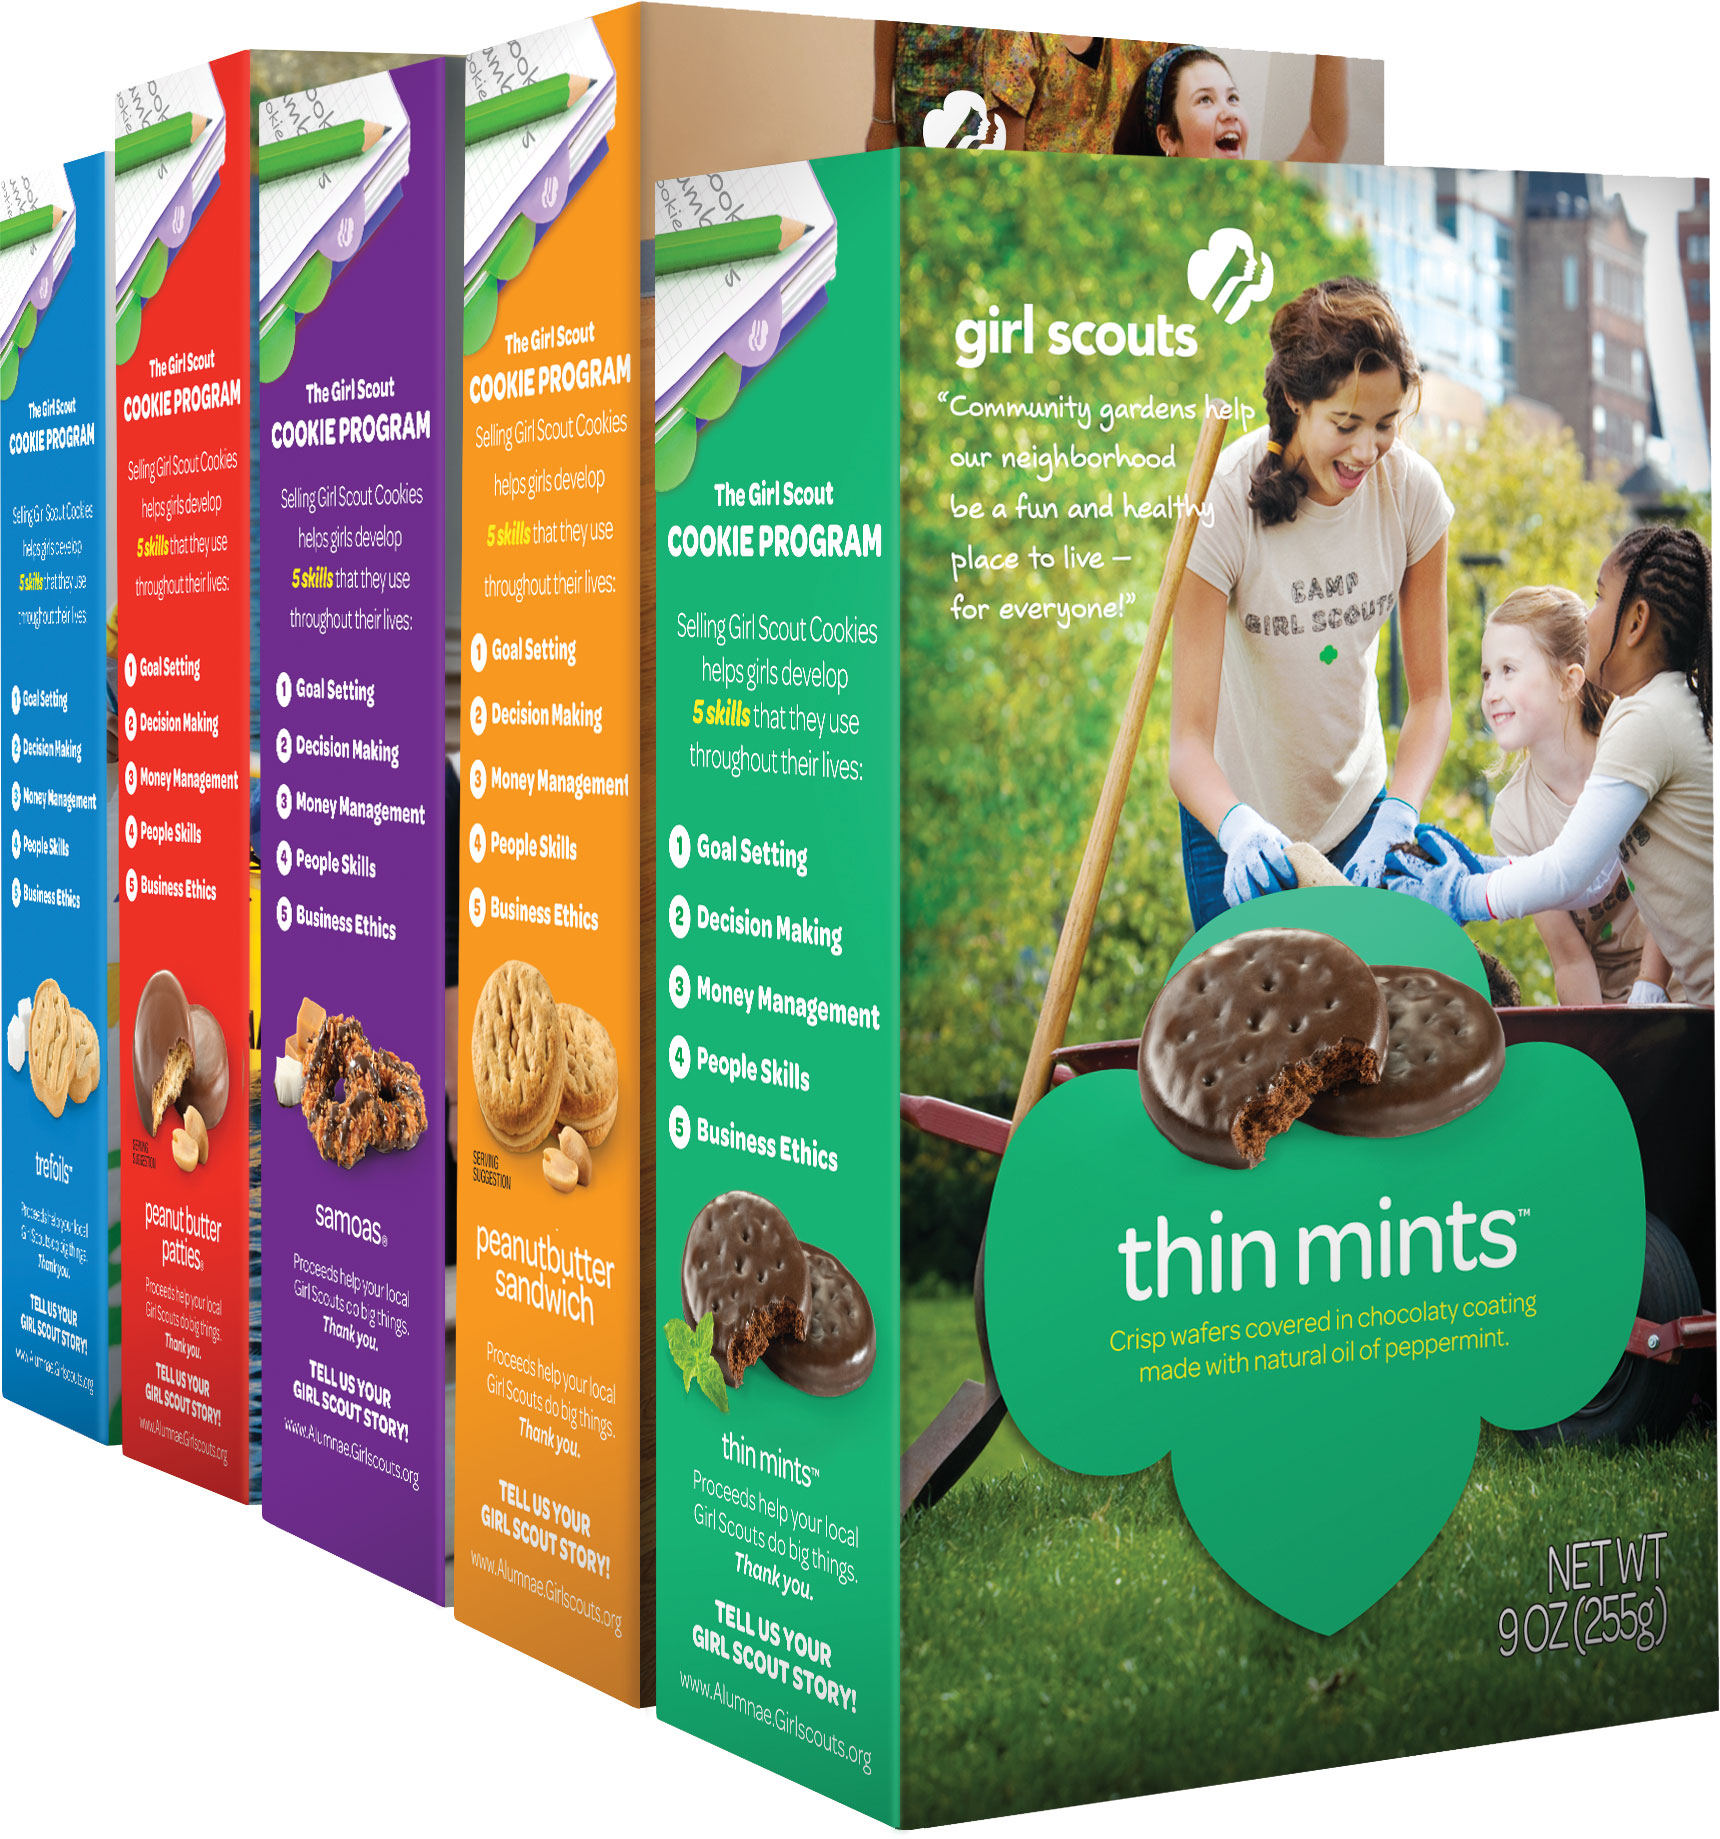 the girl scout cookie program (this is from a girl scout leader in el paso, texas that says it all this is really how it is we couldn't of said it better) girl scouts all over the.